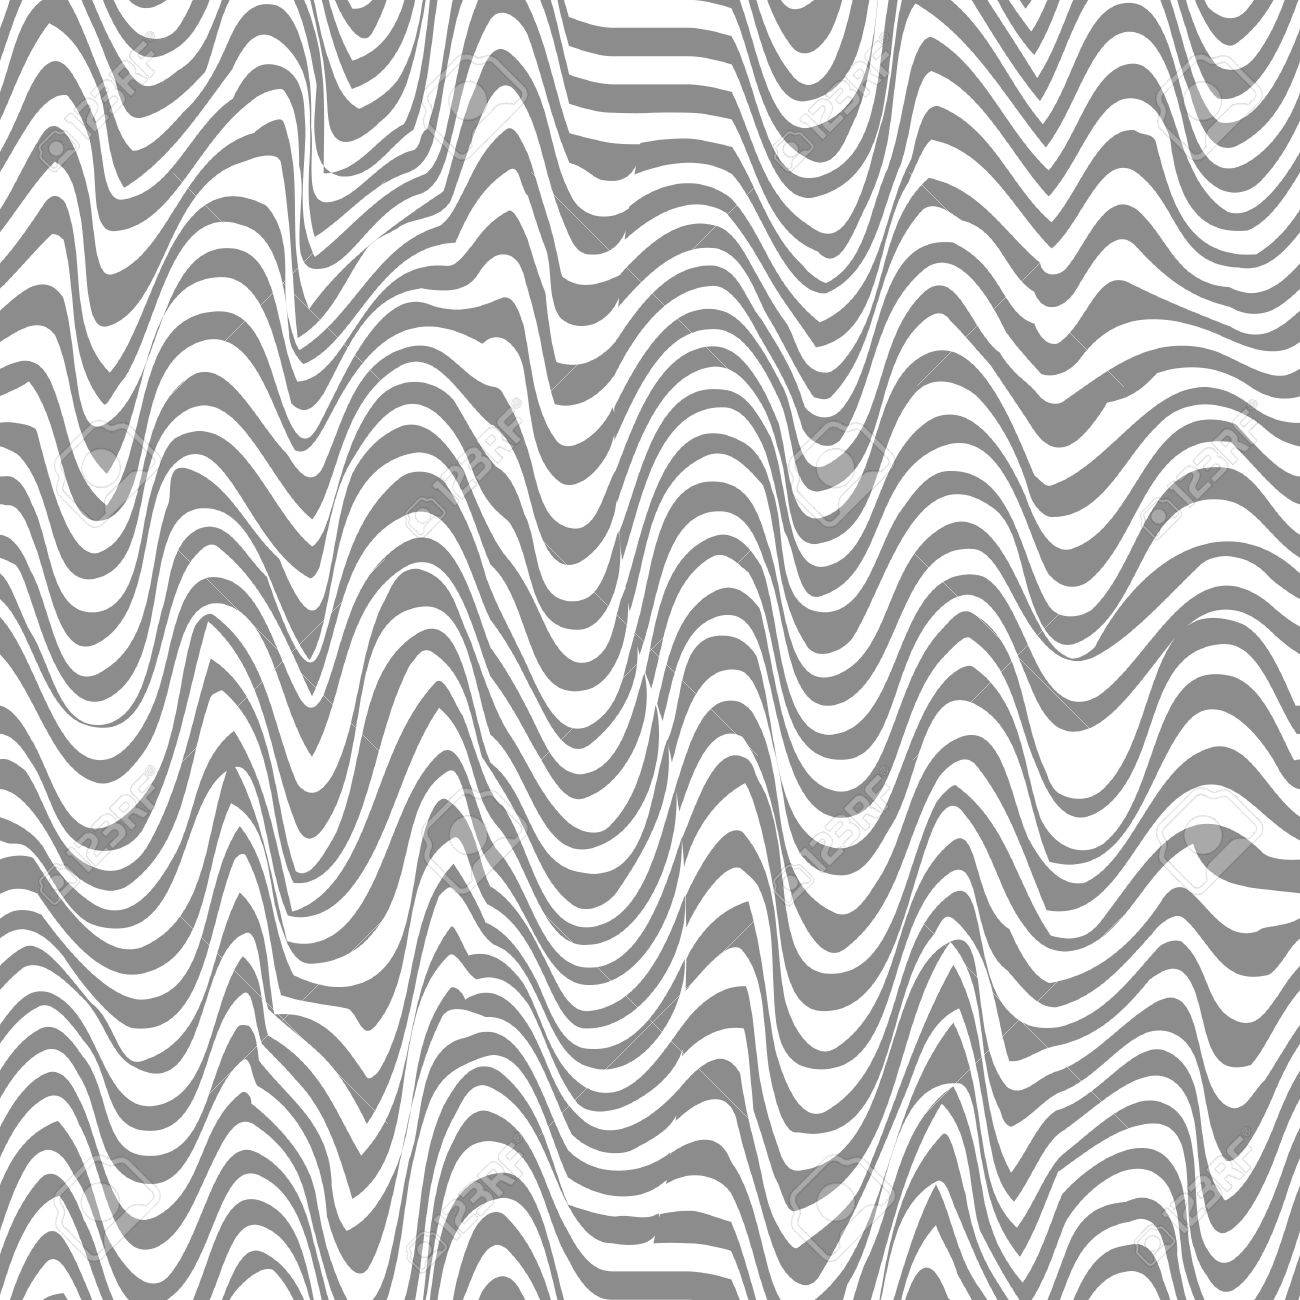 Seamless black and white abstract line vector pattern - 4391411